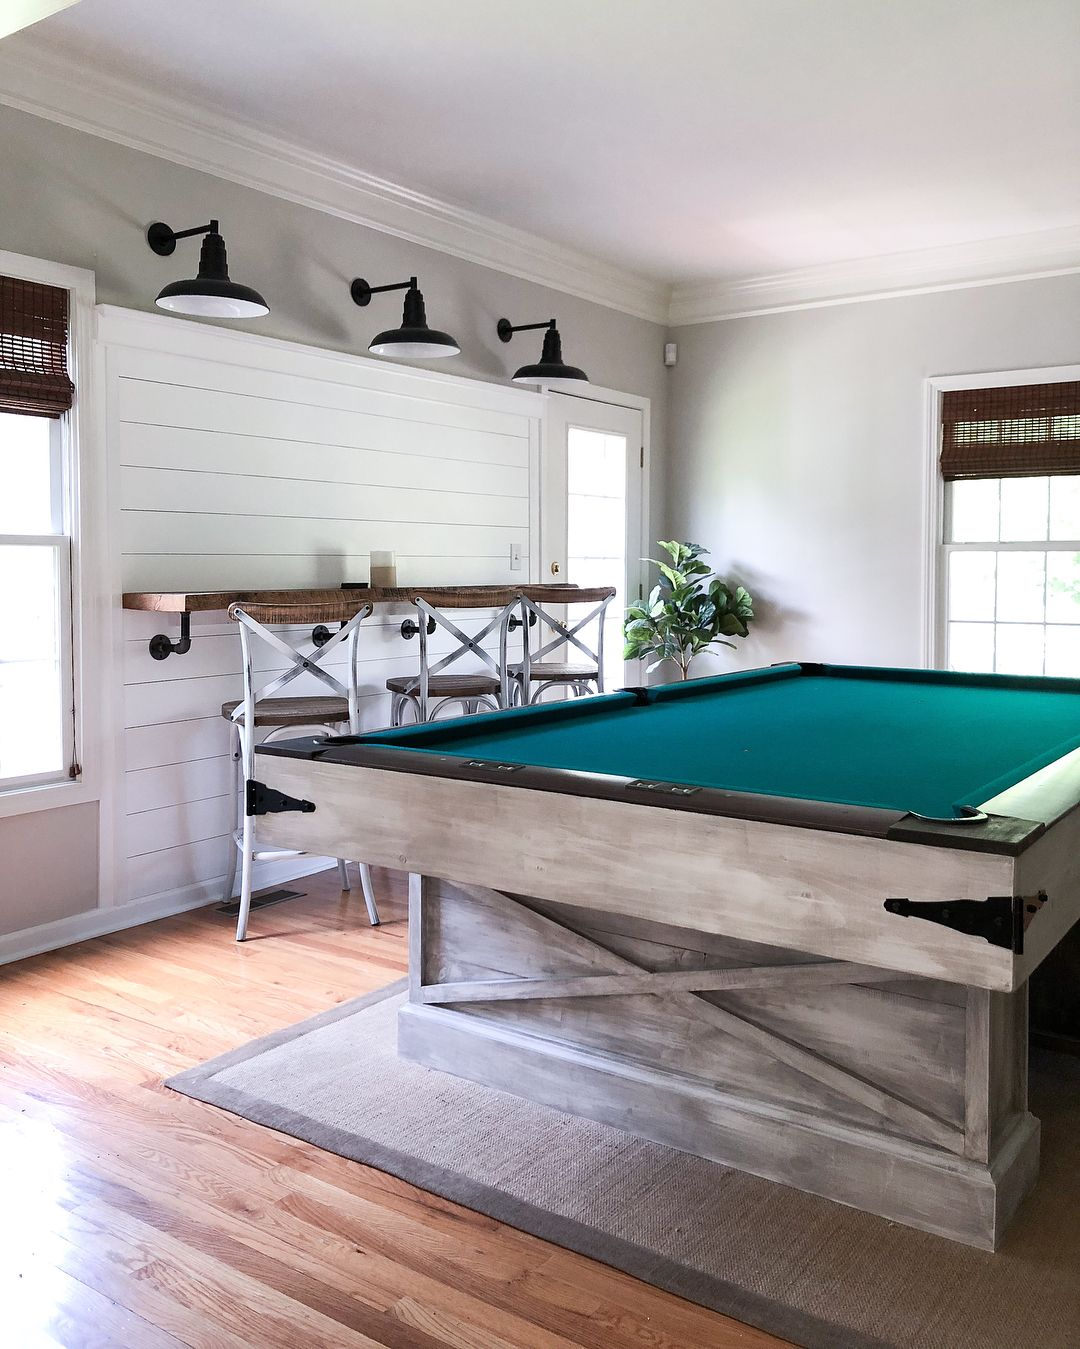 Stacey Rossetti Diy Farmhousechic4sure Instagram Photos And